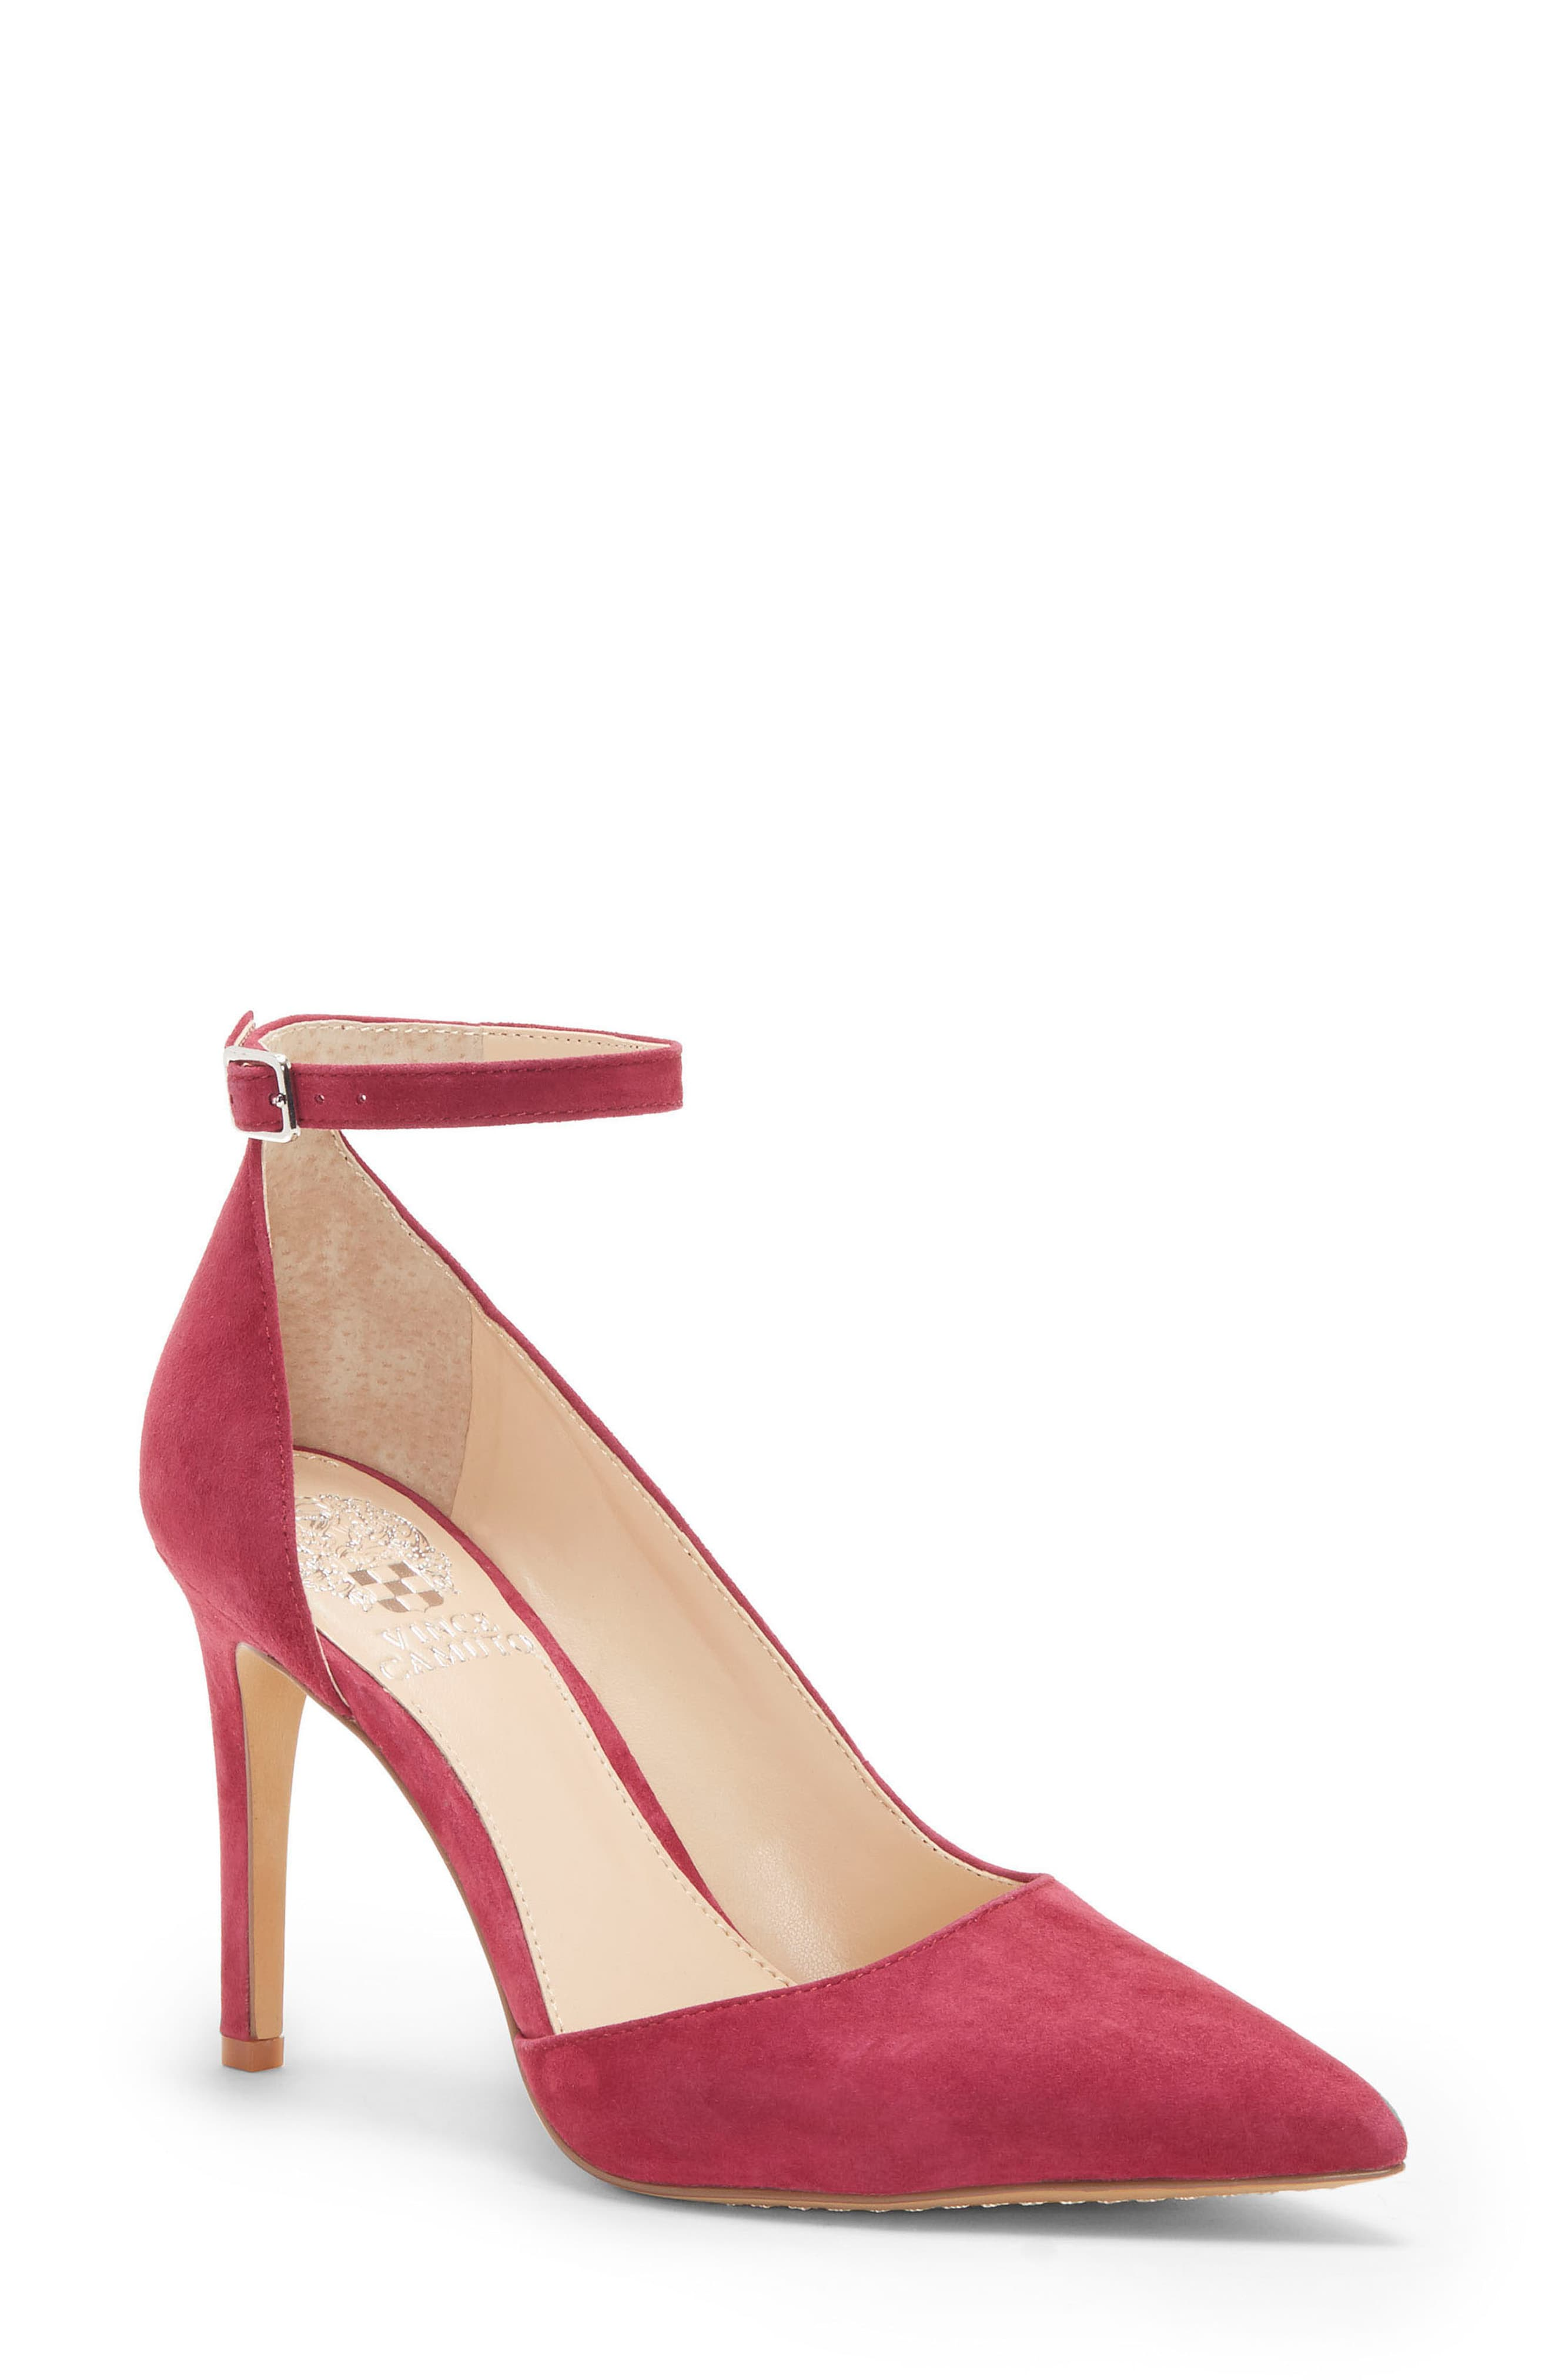 7980c78578f Women's Vince Camuto Marbella Pump, Size 7 M - Pink in 2019 ...